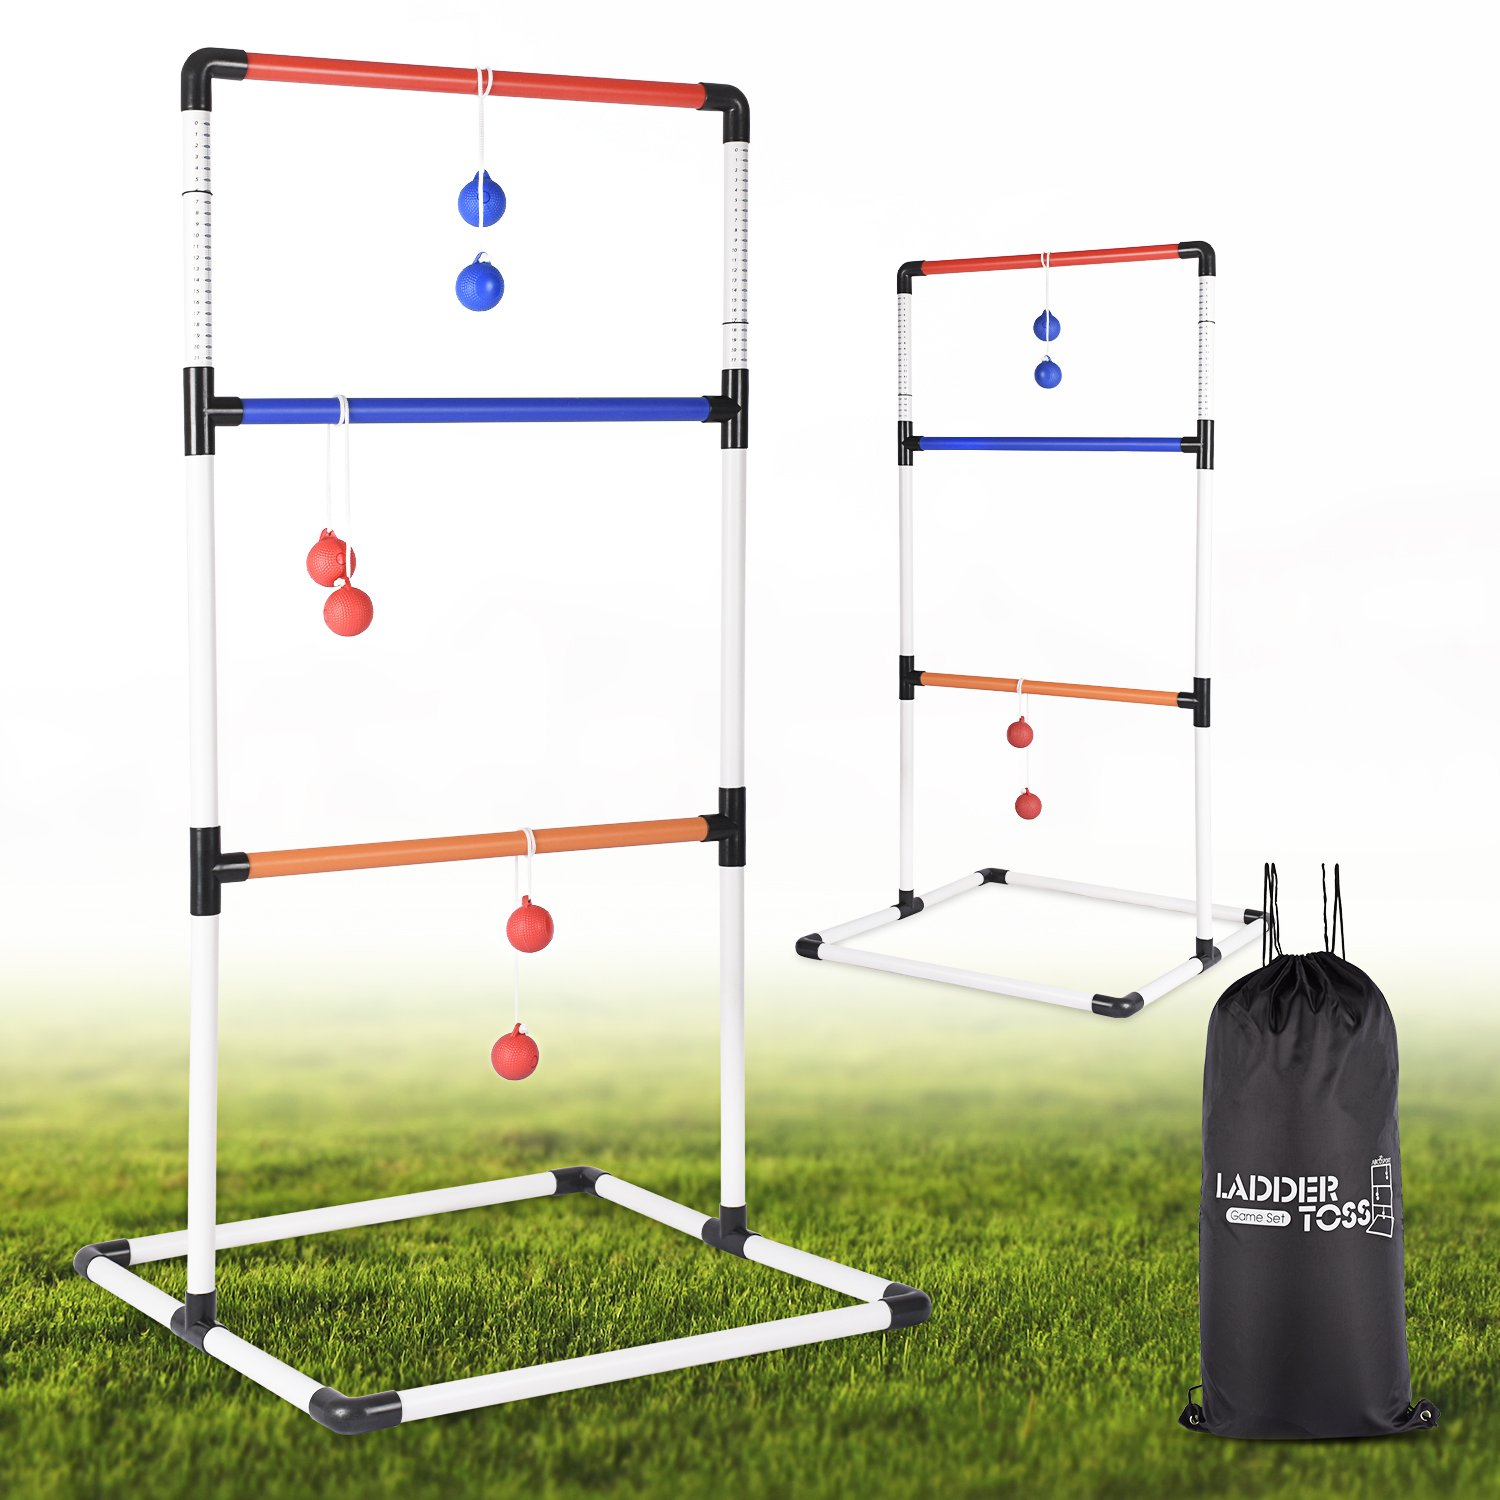 Ladder Toss Ball Game Set - Box Shaped Sturdy & Stable Base – 6 Toss Bolos with Thick Rope – Built-in Score Tracker – Ideal for Indoor/Outdoor Game - With Backpack Bag – Easy Setup – 2-4 Player by Abco Tech